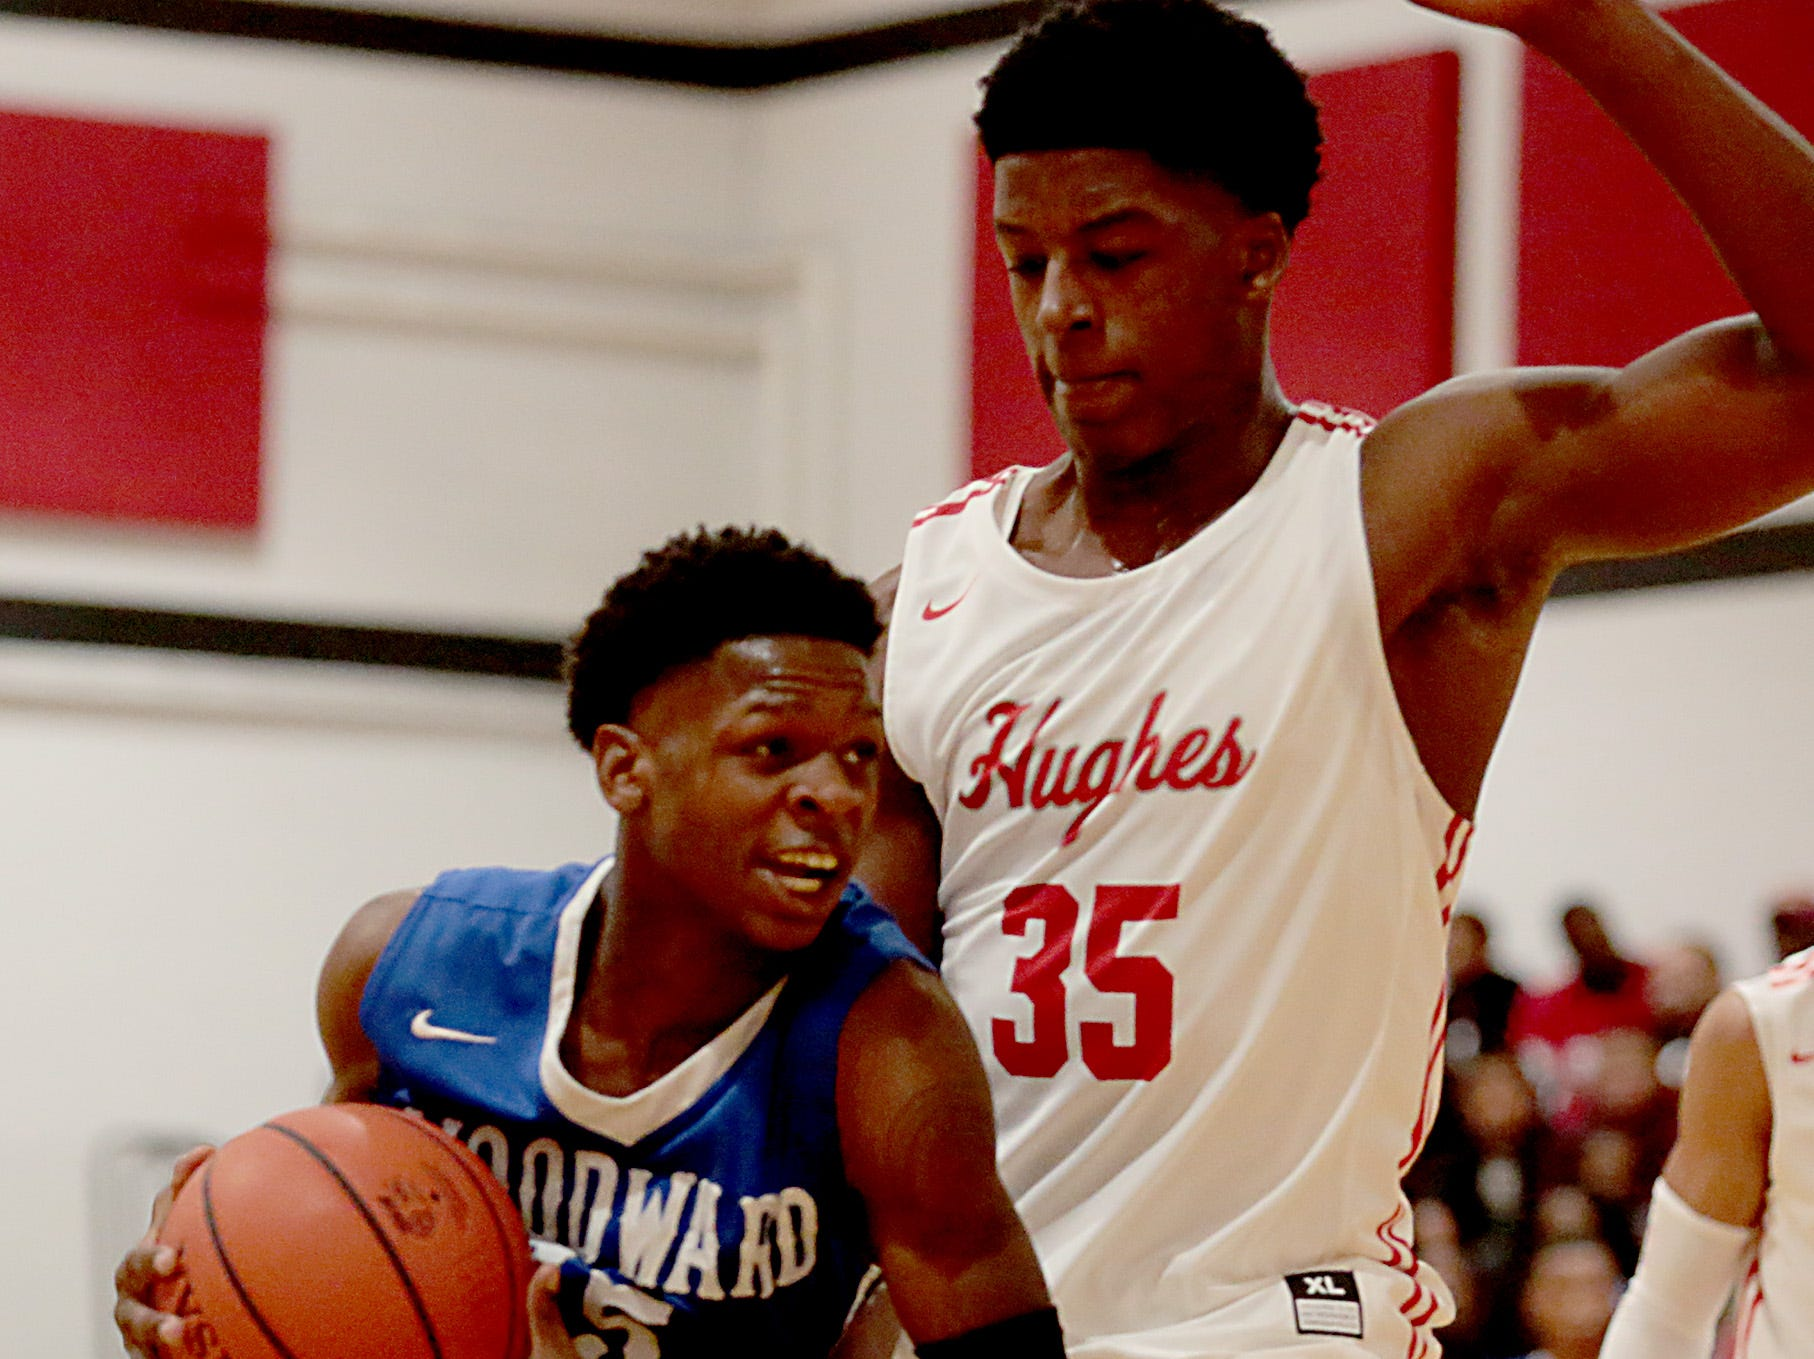 Woodward guard Monte Lewis tries to drive on Hughes center Kenny Jackson during their game at Hughes in Clifton Friday, Nov. 30, 2018.